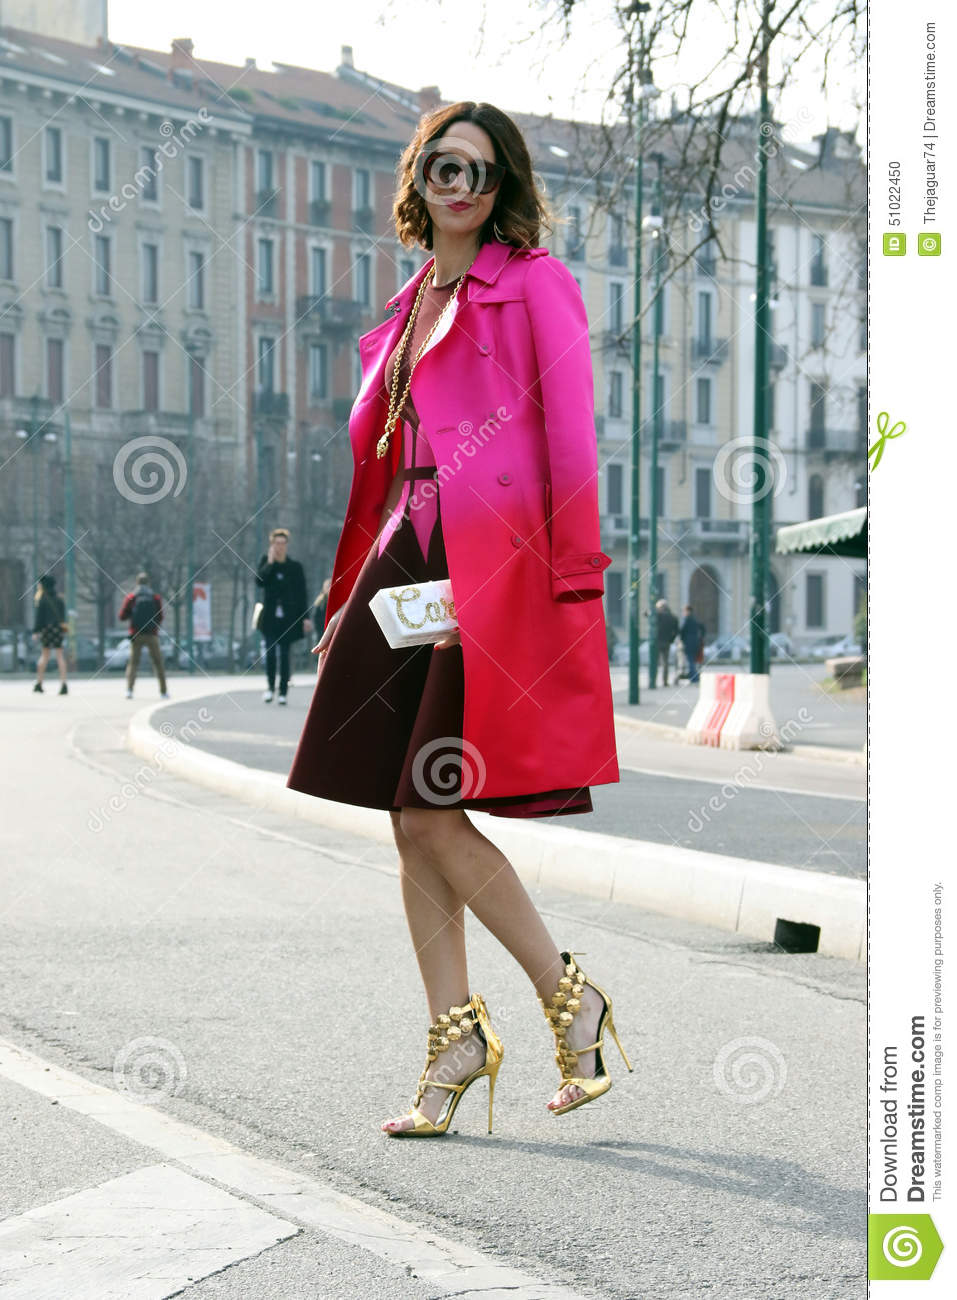 Carrie colbert Milano,milan fashion week streetstyle autumn winter 2015 2016